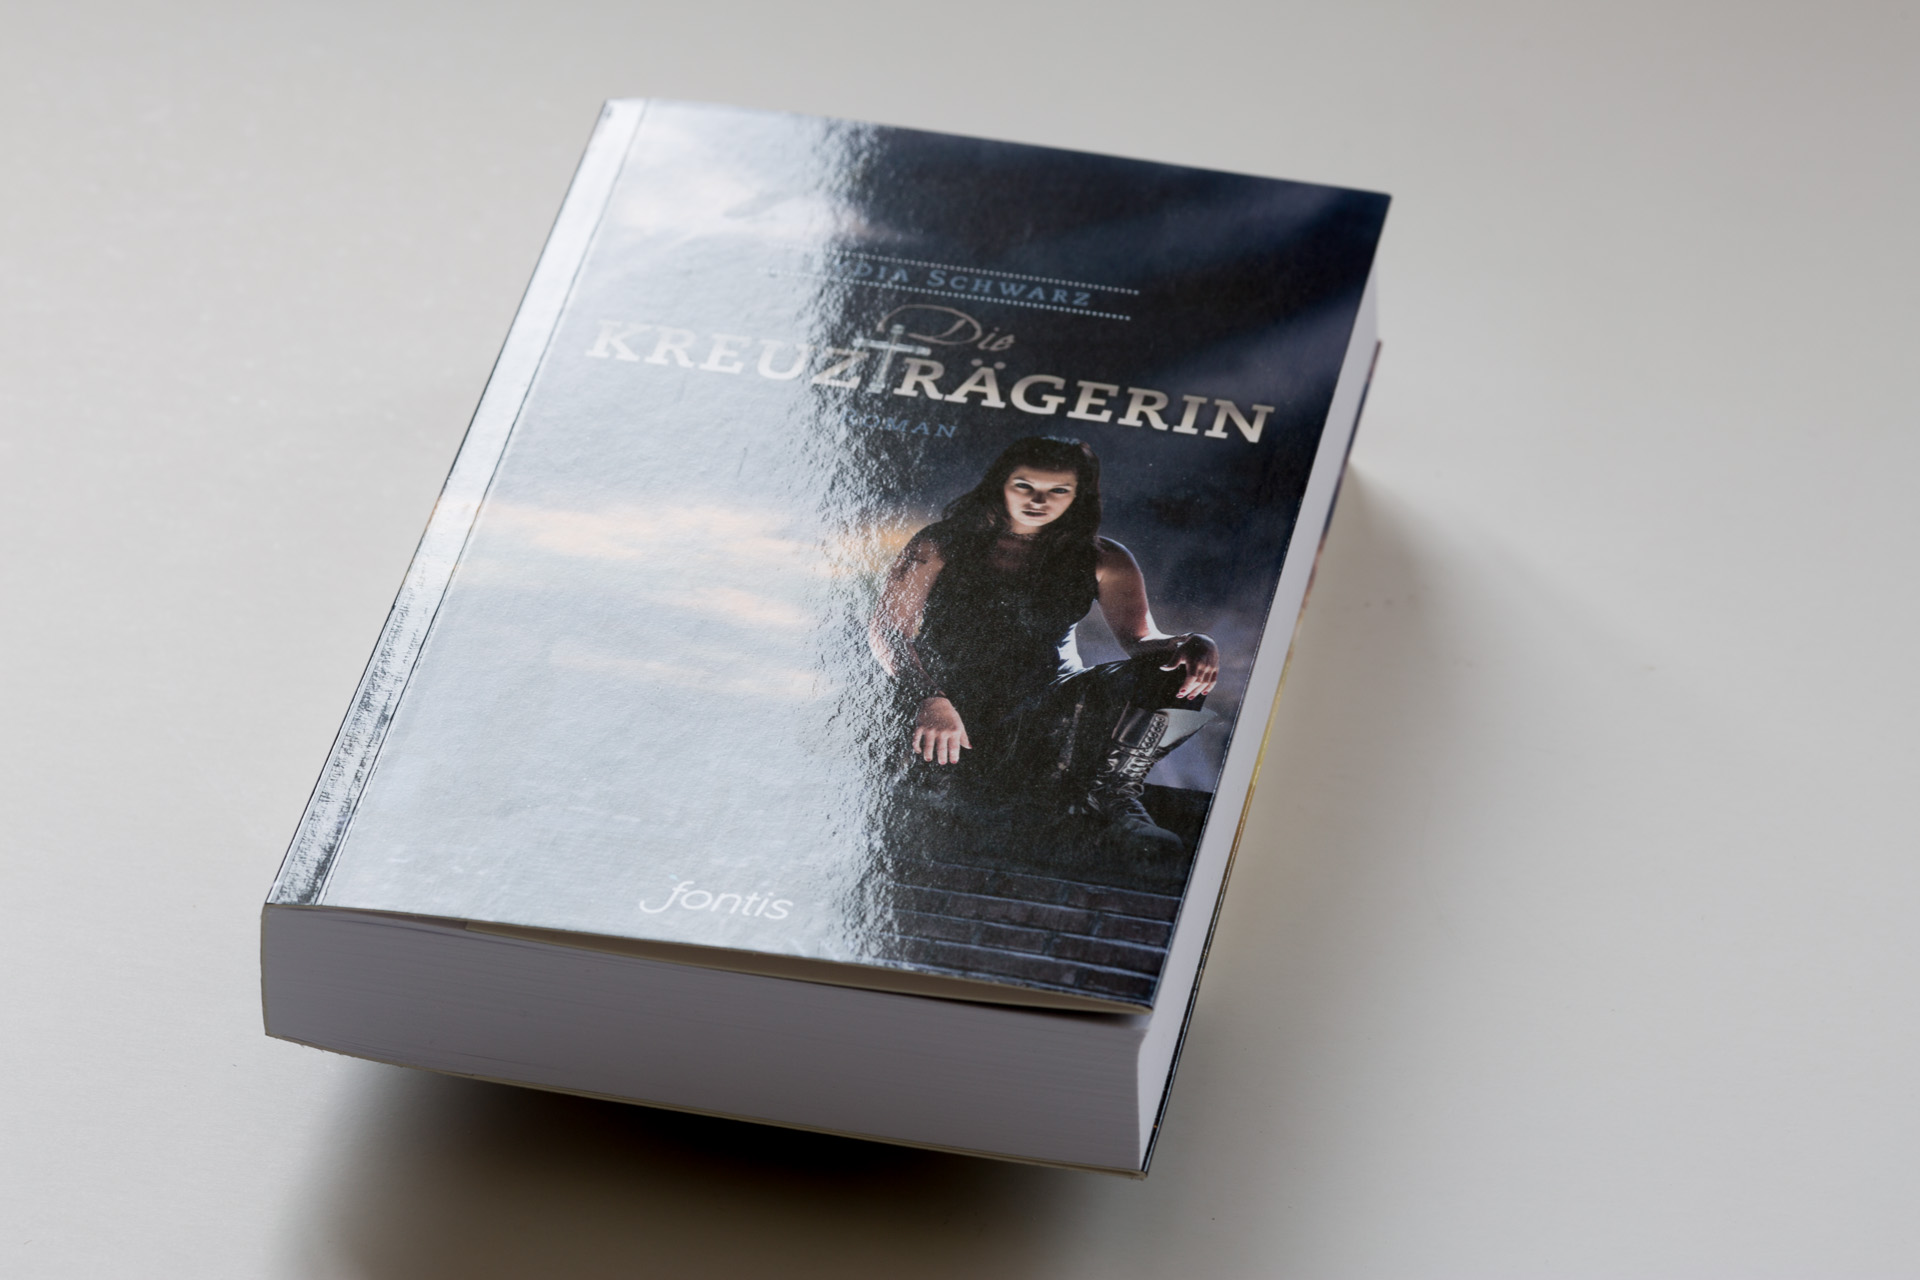 Book gloss lamination - Die Kreuztragerin